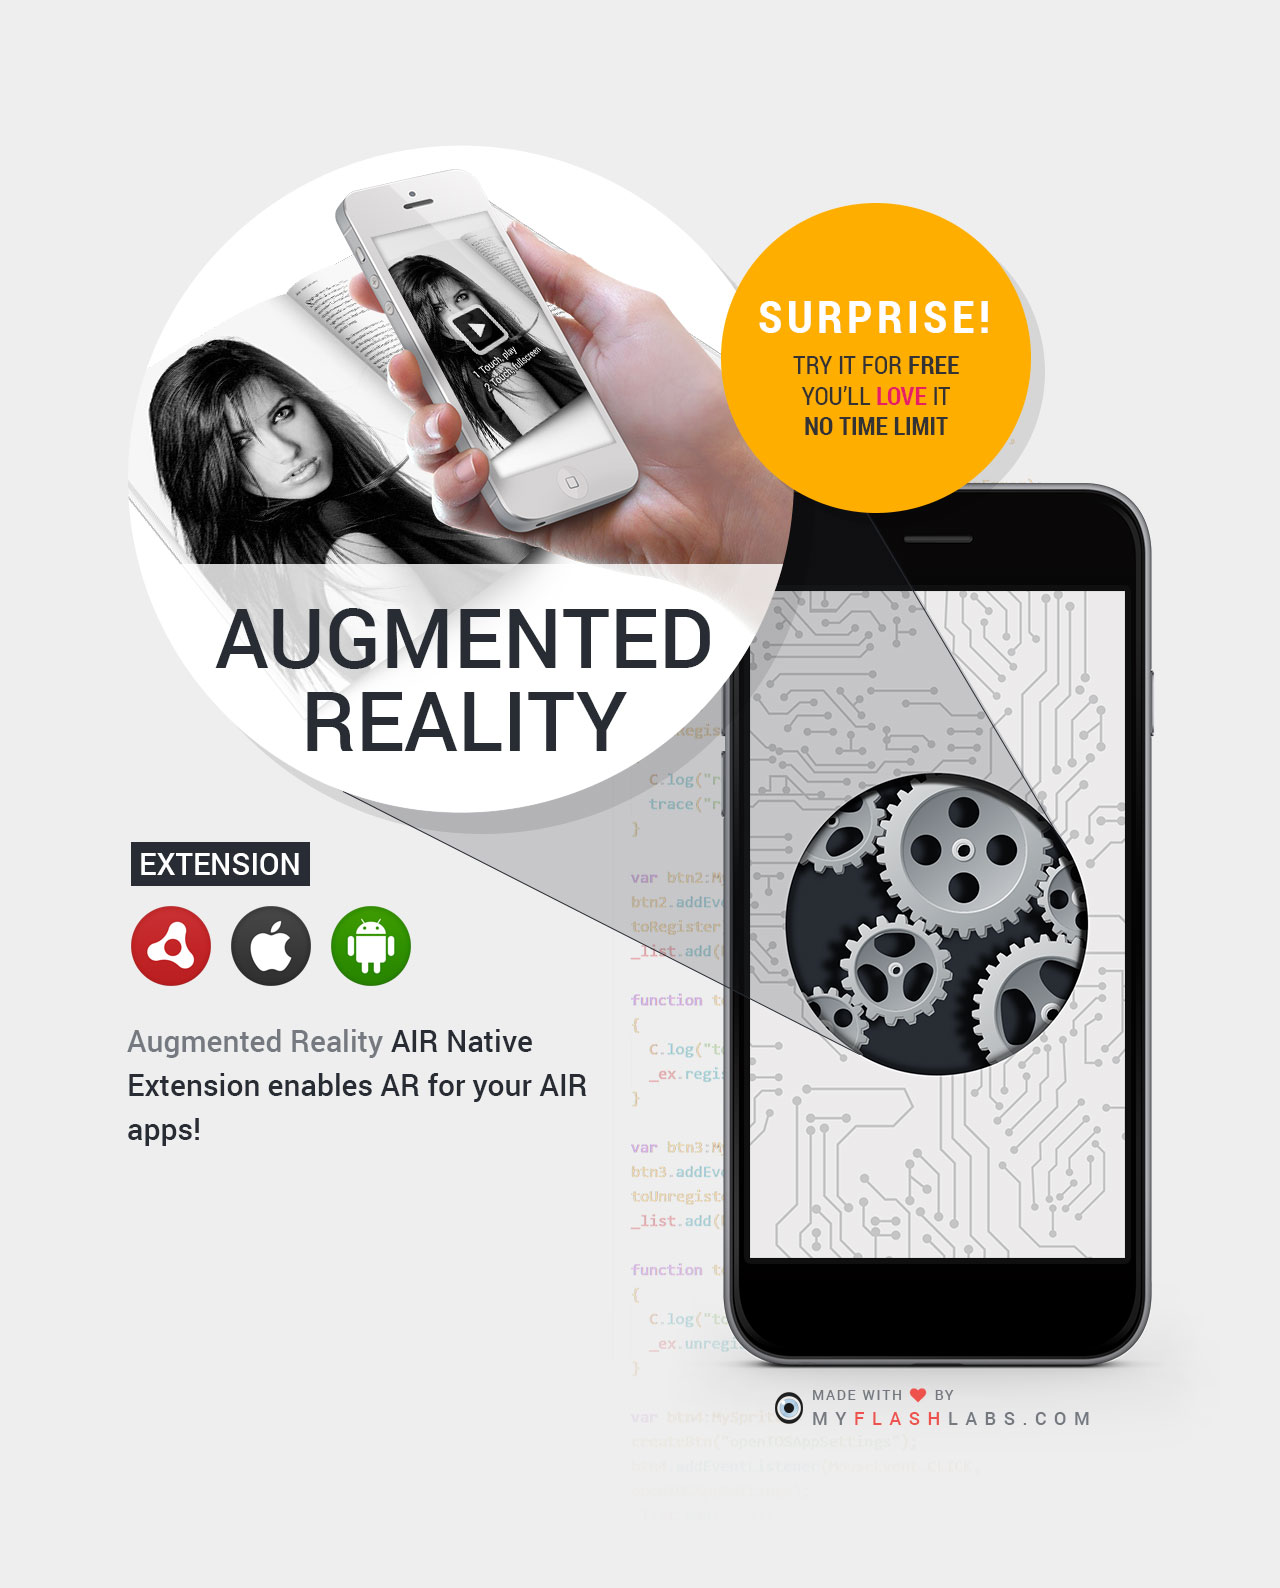 augmented product Best augmented reality apps 2018 constantly curated, reviewed and updated to bring you the best and most exciting ar apps currently available.